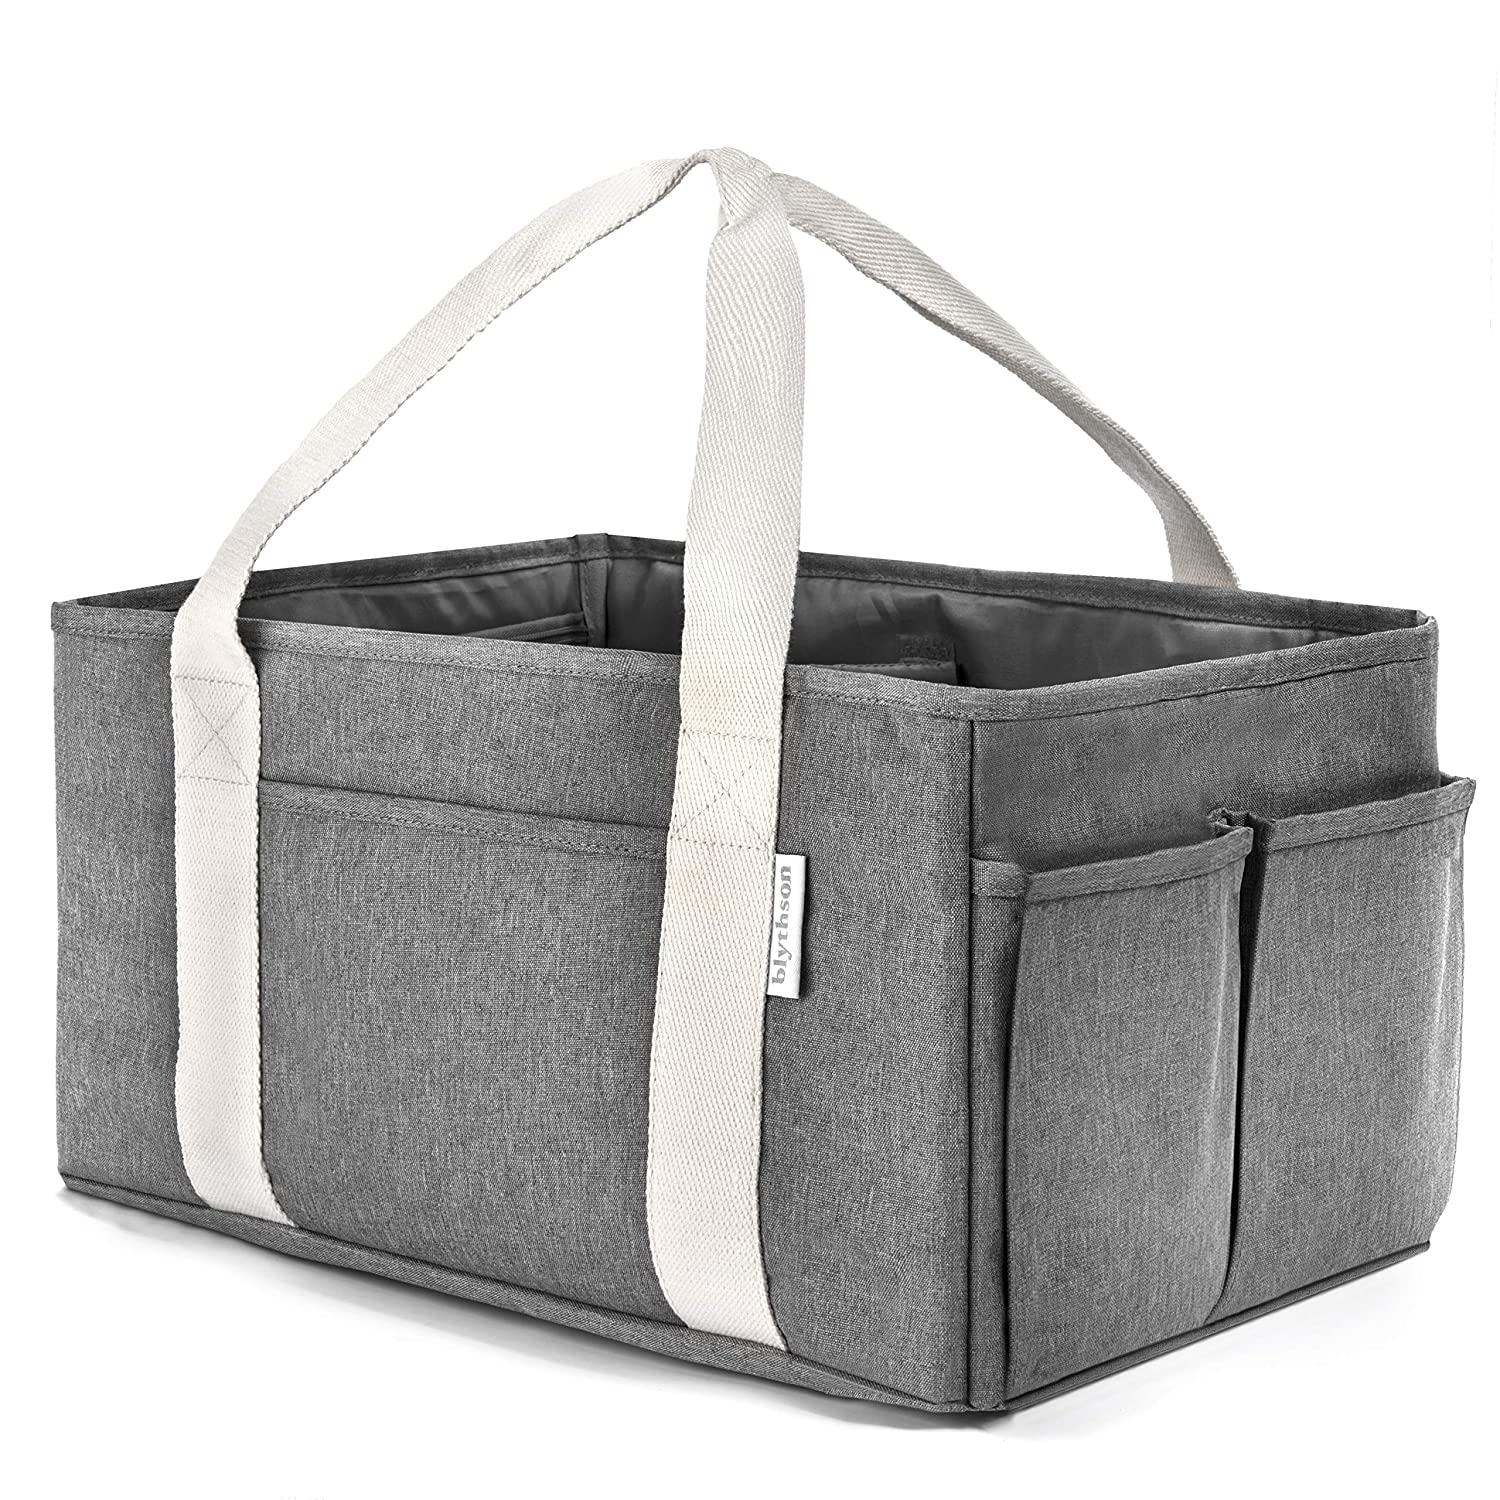 Large Baby Diaper Caddy Organizer, Grey, with Multiple Pockets & Compartments :: Collapsible, Portable Holder with Handle for Nursery, Unisex for Boys & Girls :: Durable, Easy to Clean Cloth Blythson